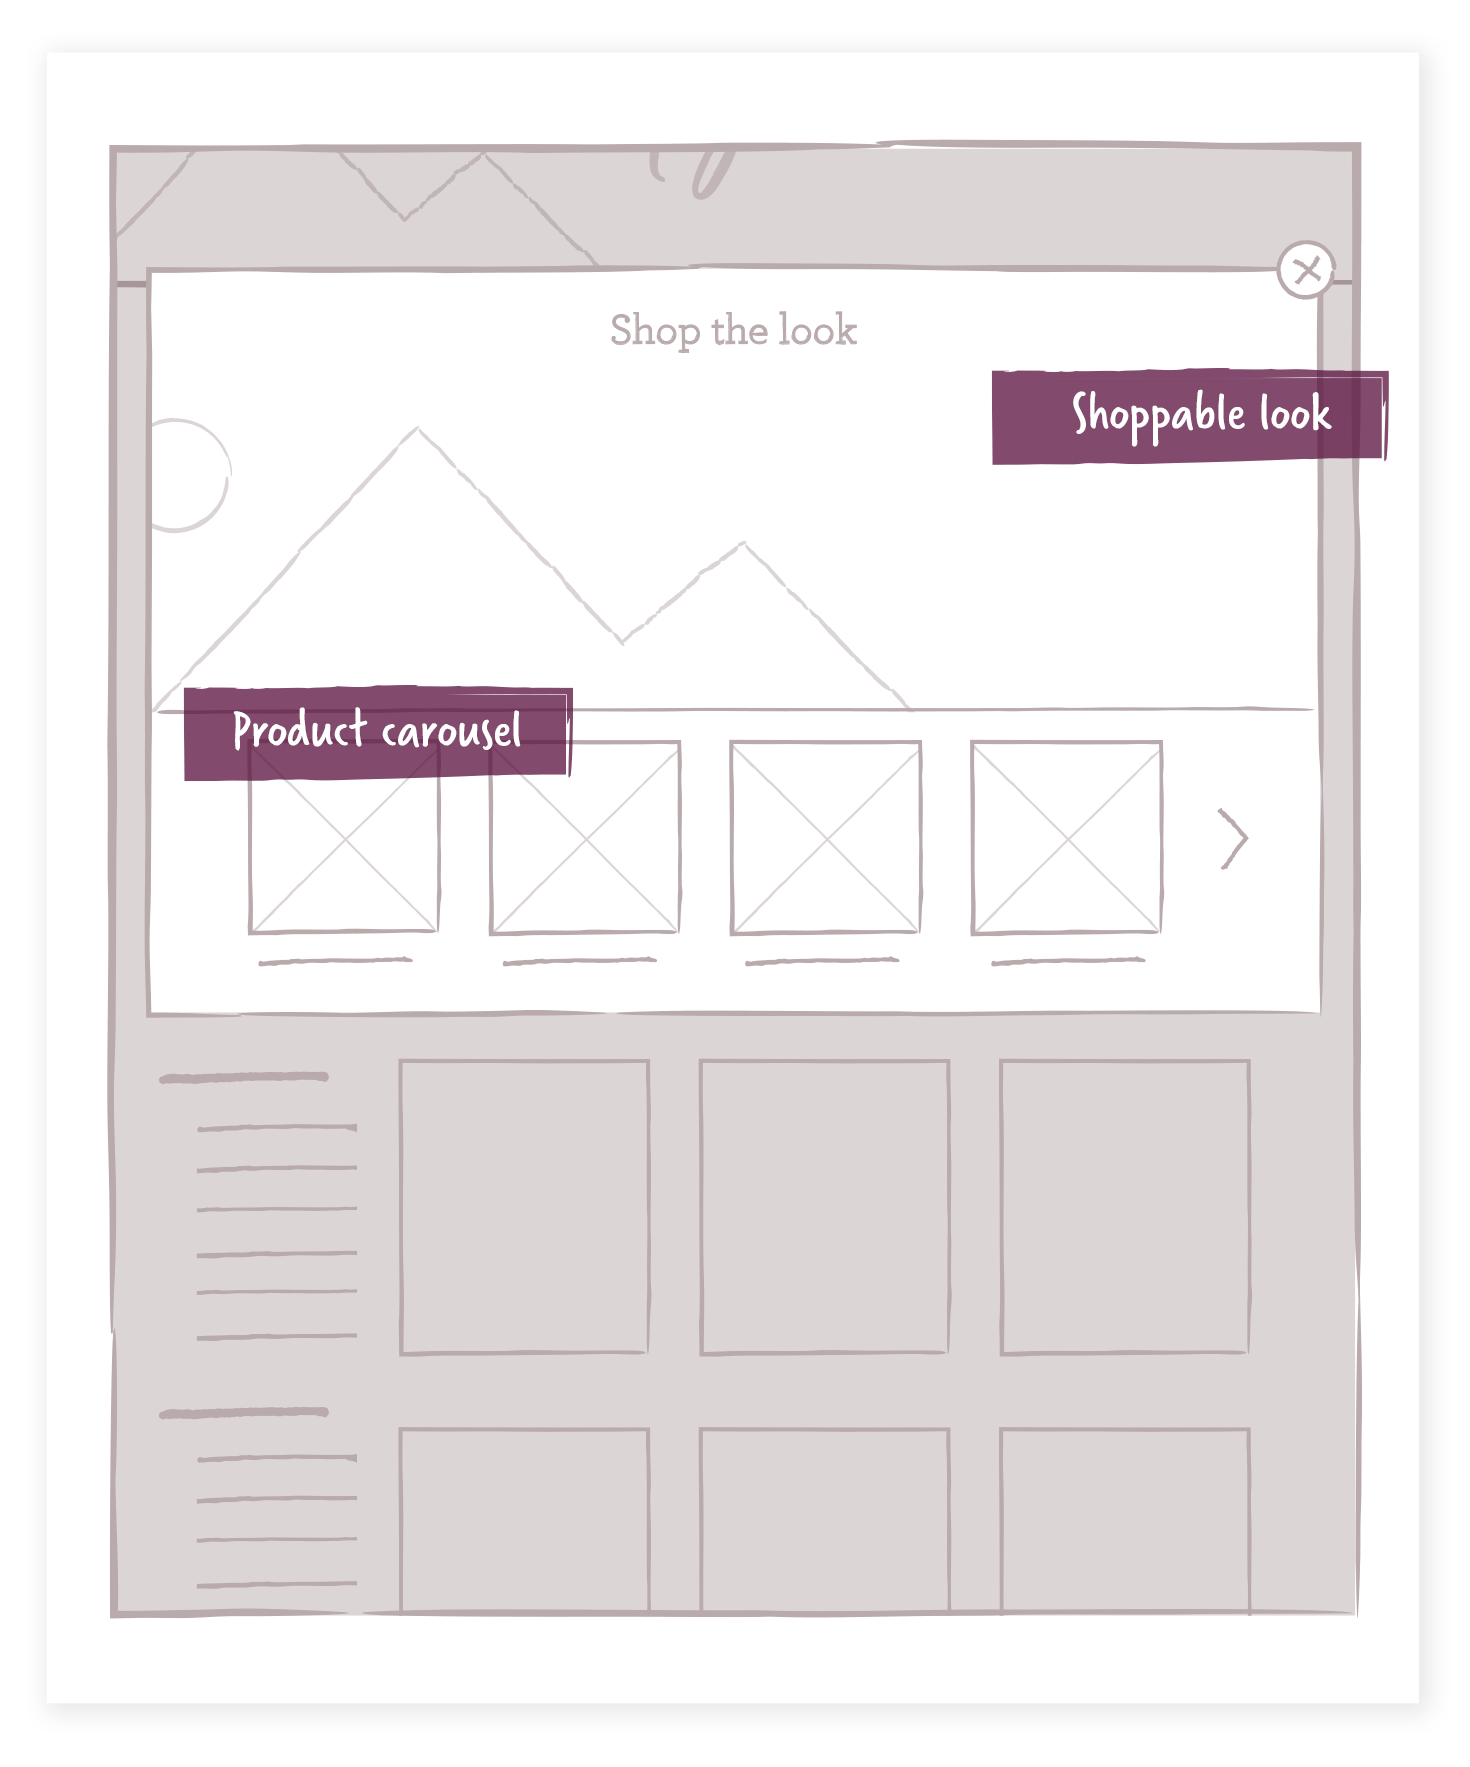 Your Style Guide wireframe